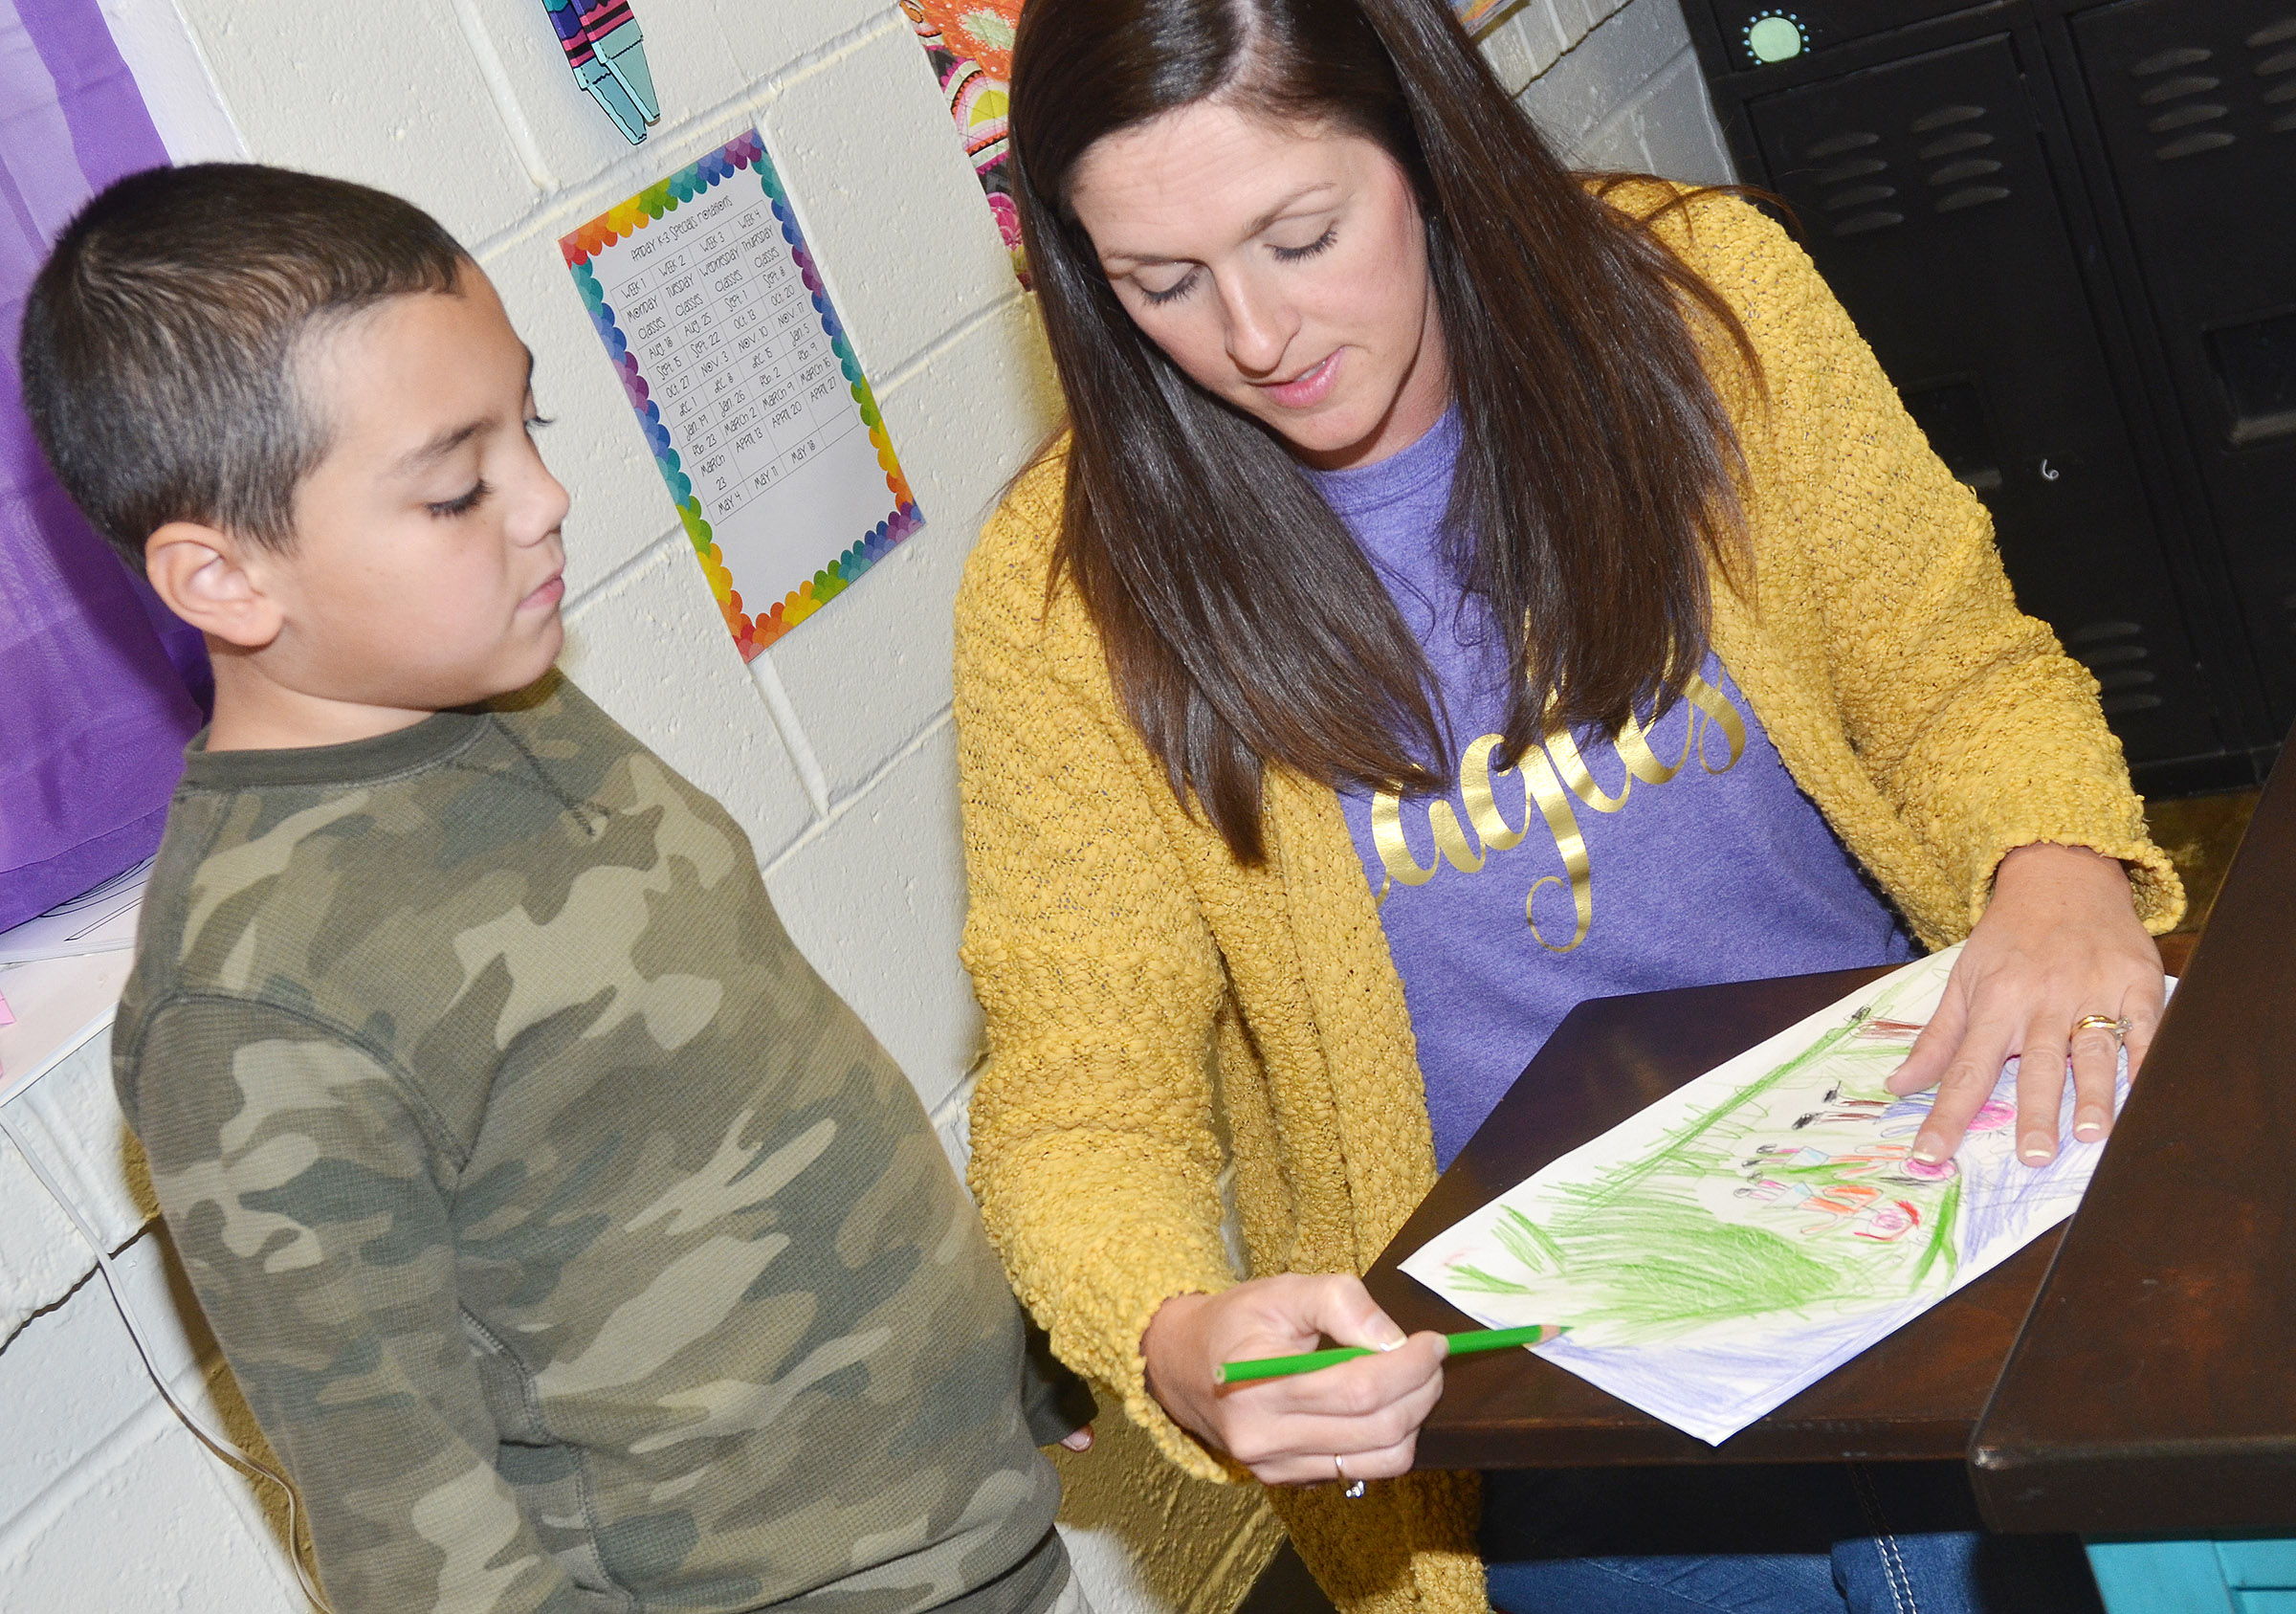 CES art teacher Adrienne Hash helps second-grader Diego Aquino as he colors his family portrait.